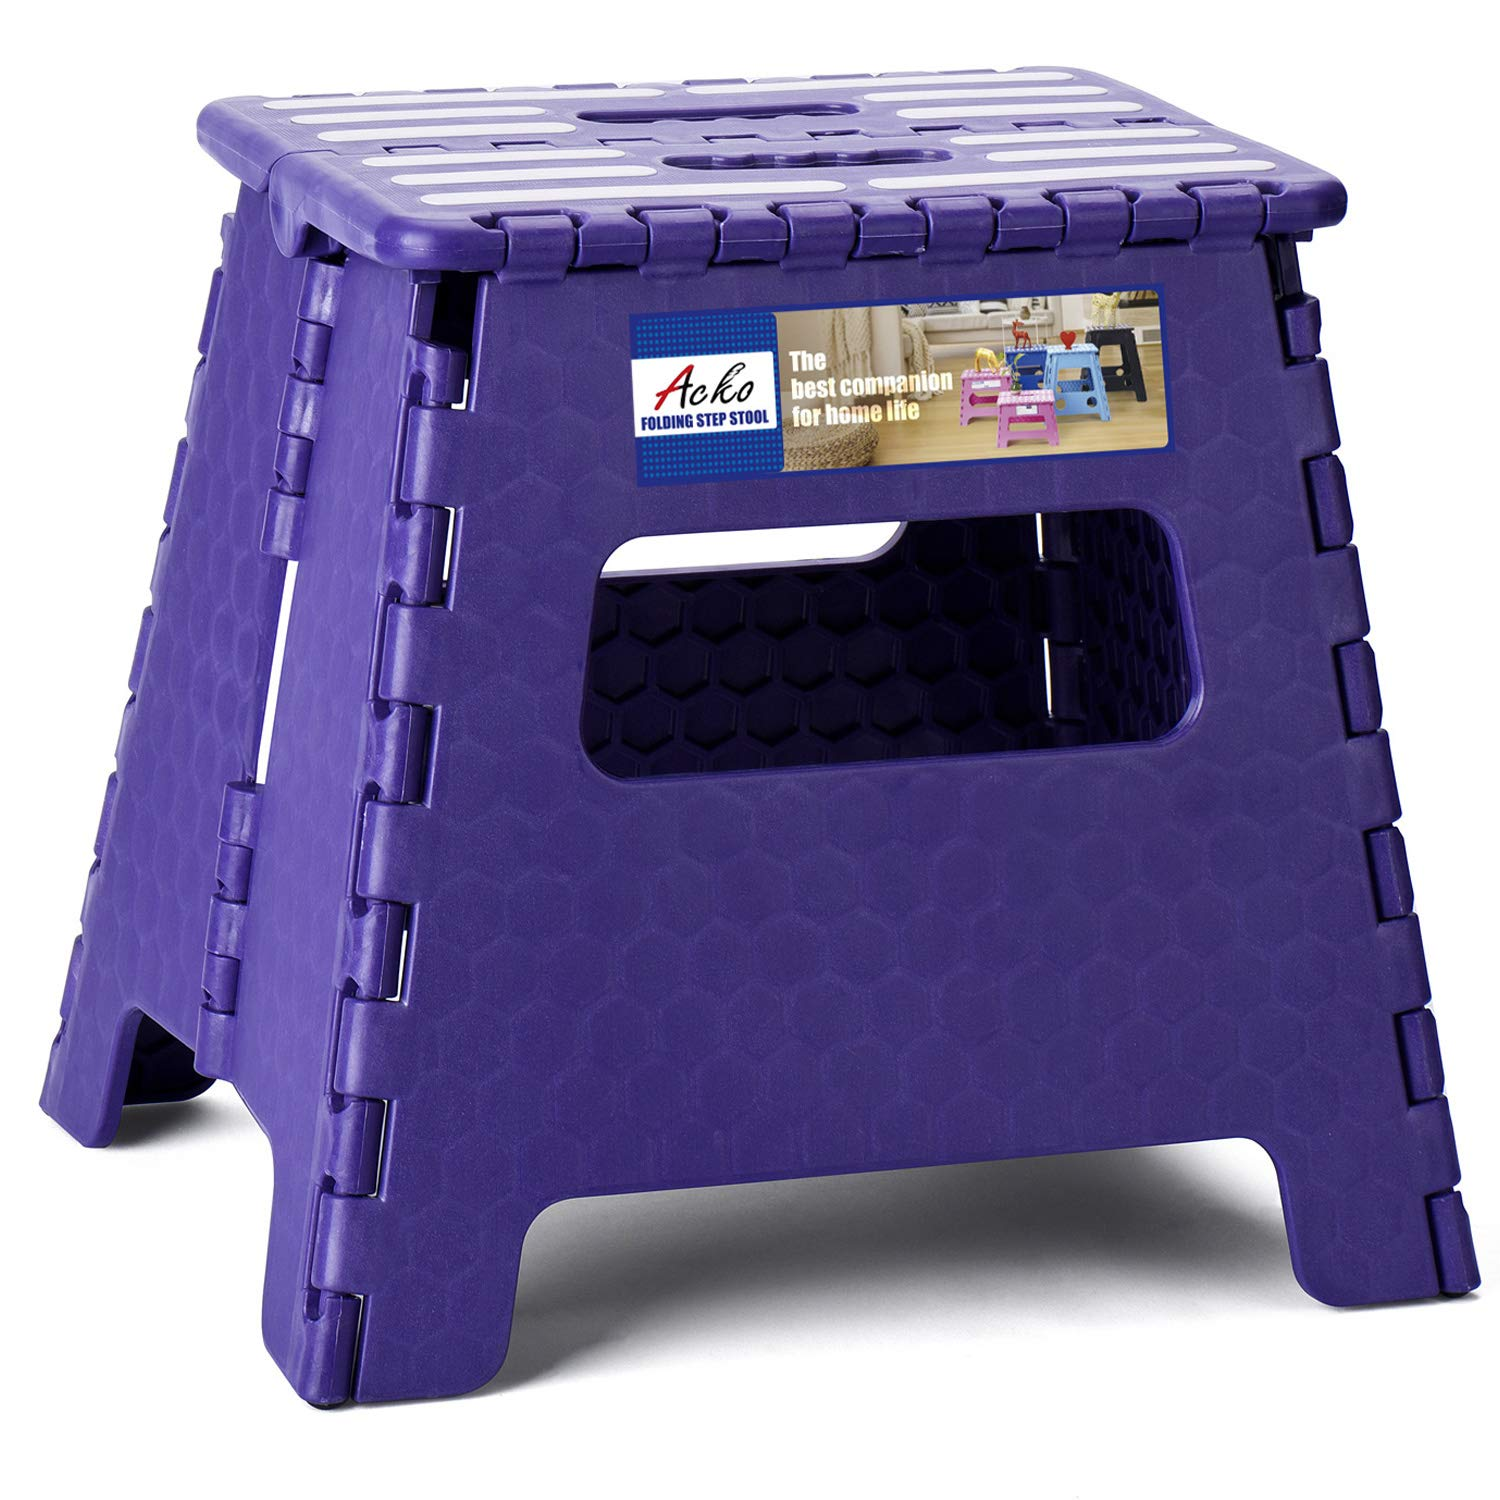 Acko Folding Step Stool 13 inch Plastic Folding Stool,Kitchen Step Stool,2019 Upgraed Foldable Step Stool for Adults,Plastic Stepping Stool,Purple